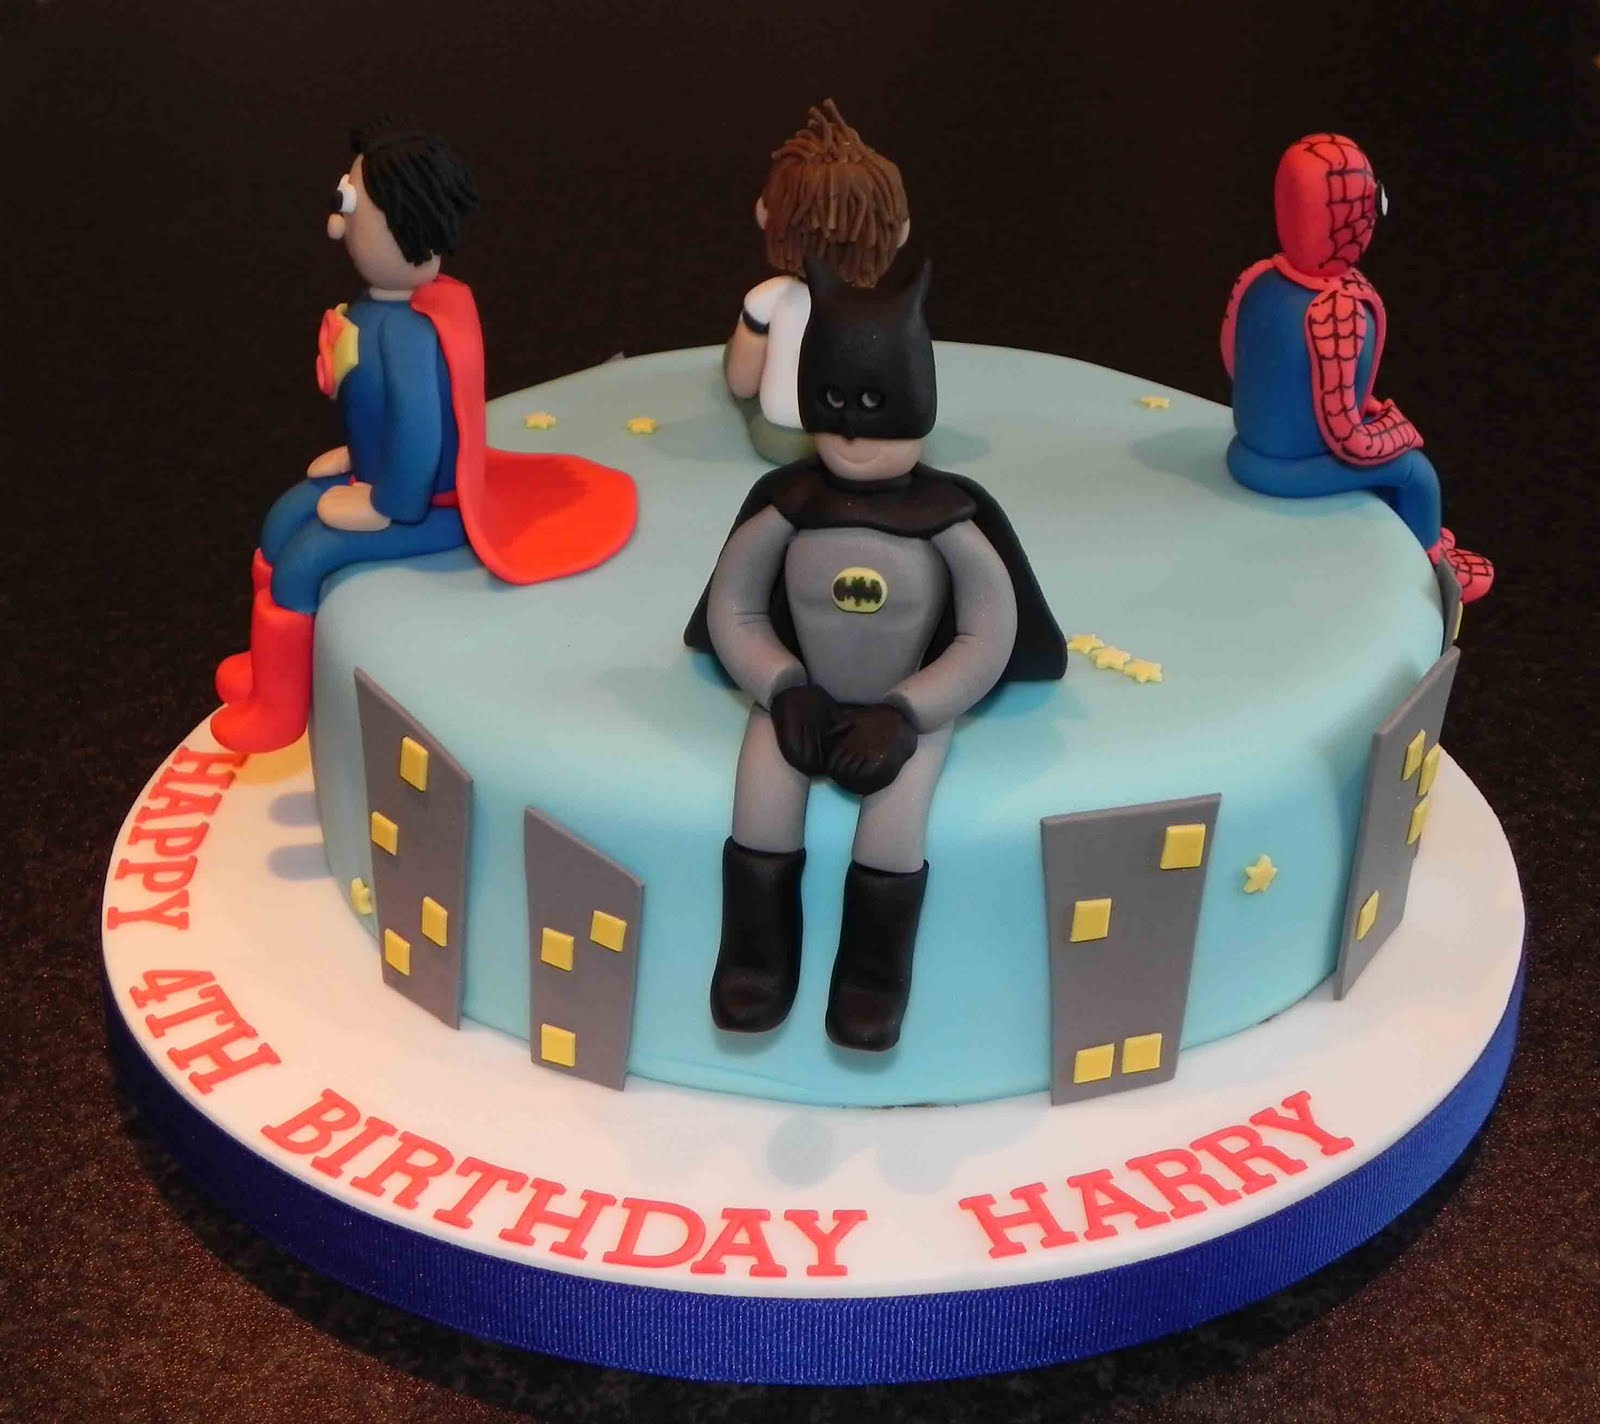 Themed Cakes, Birthday Cakes, Wedding Cakes: Super Heros Themed Cakes